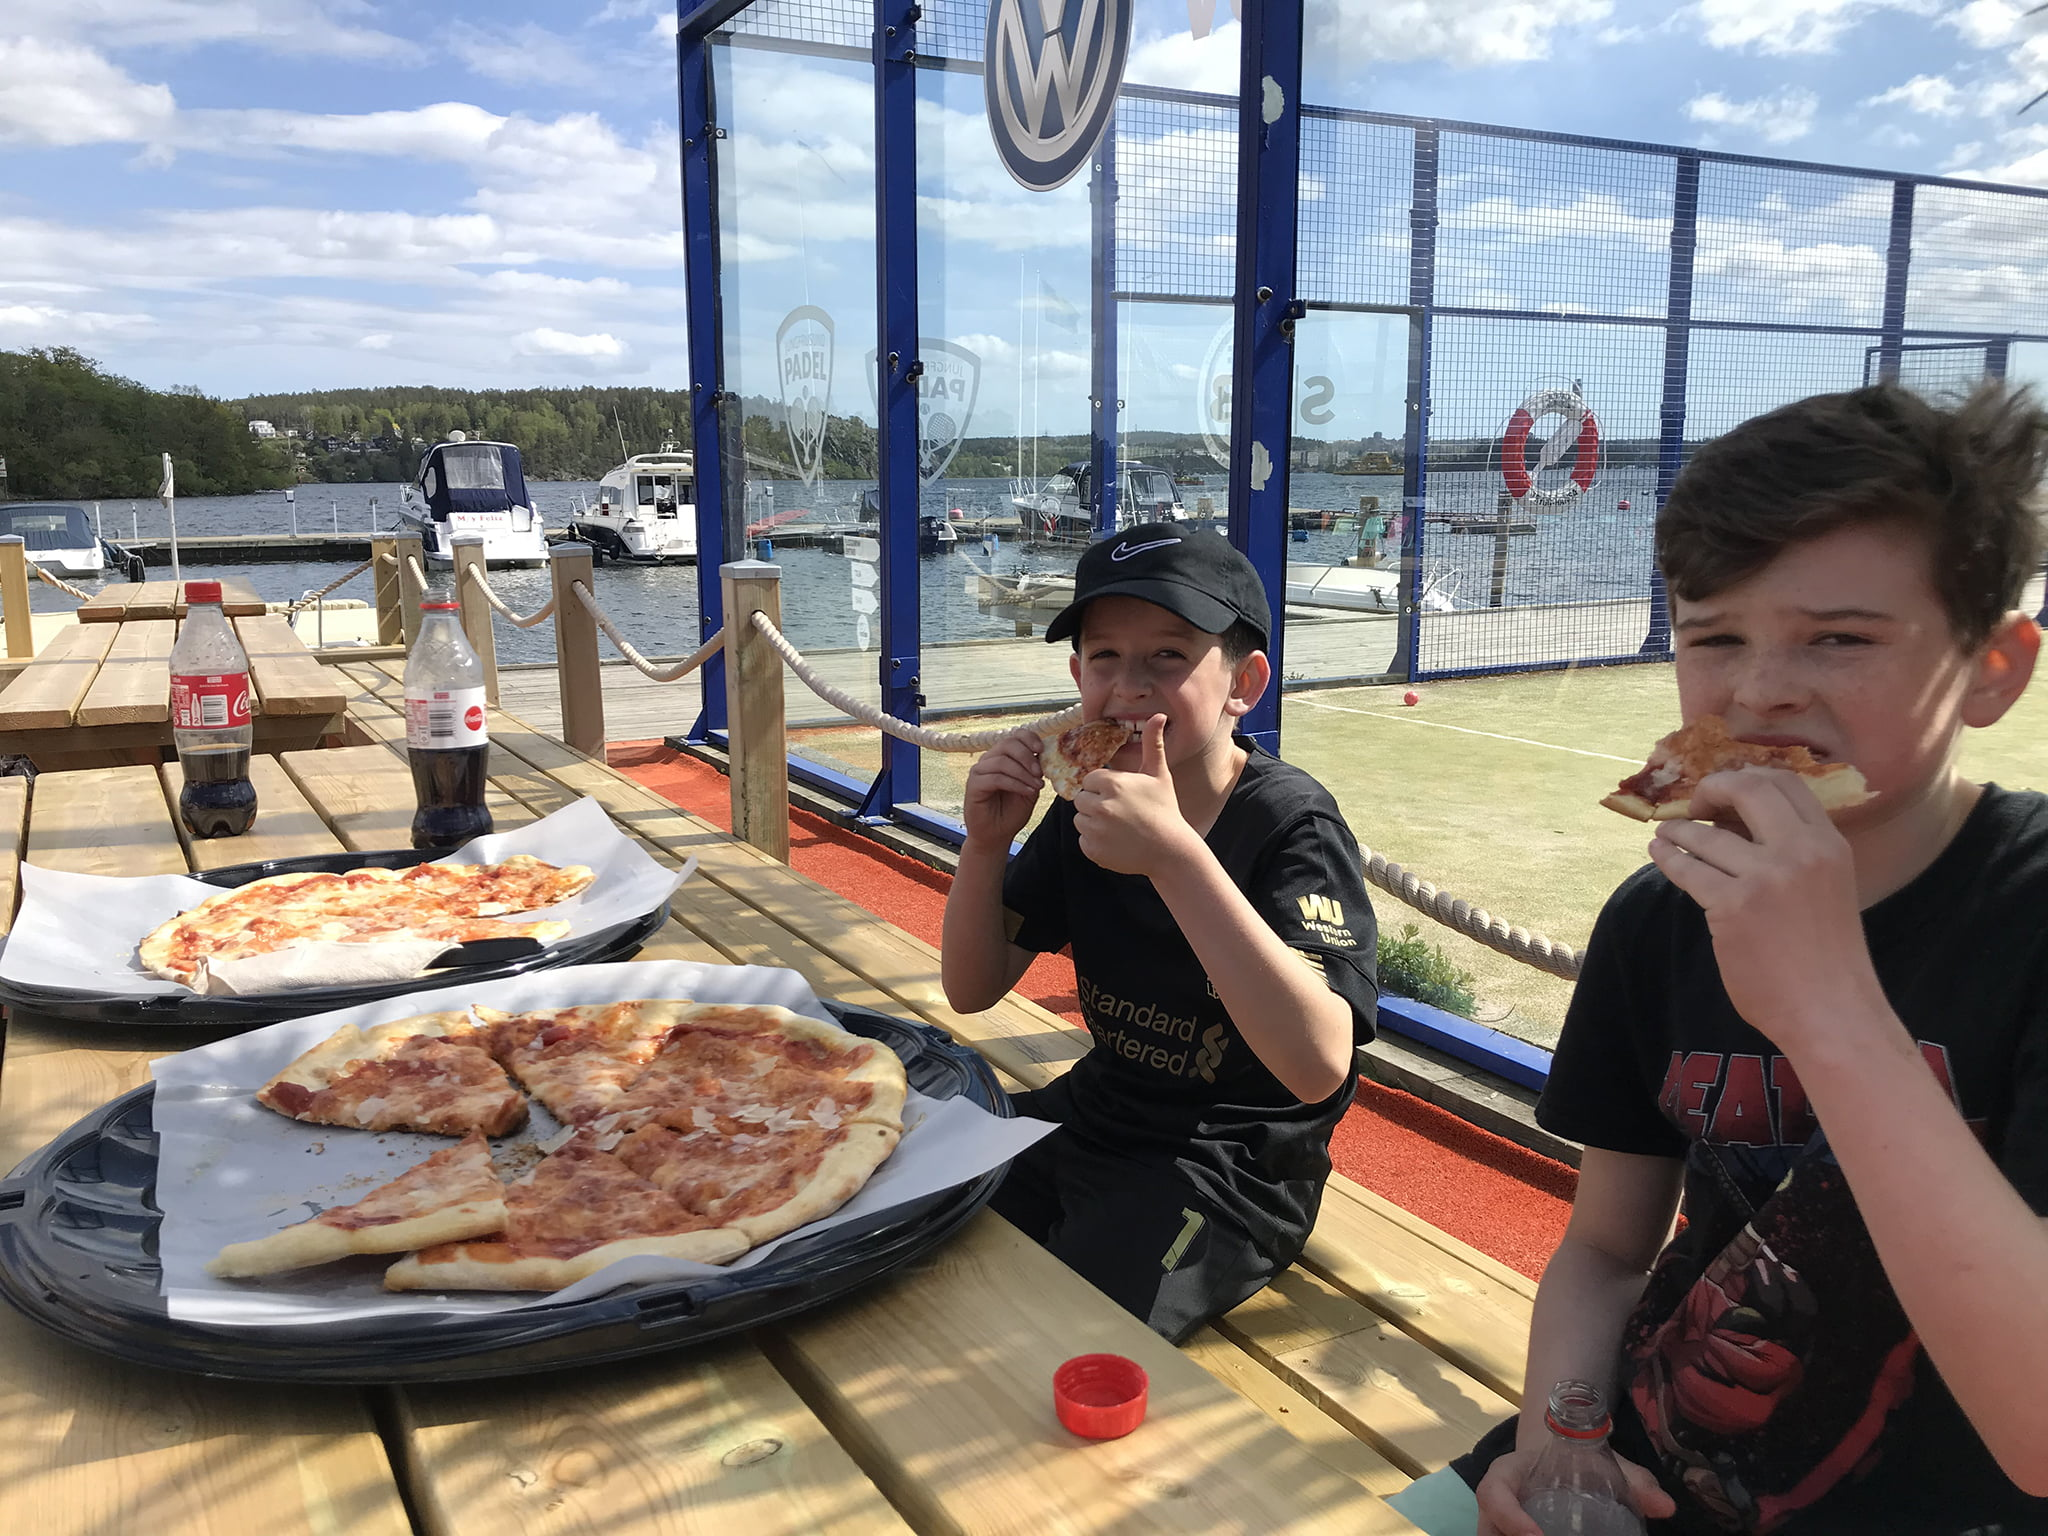 Gillar Pizza i Jungfrusund